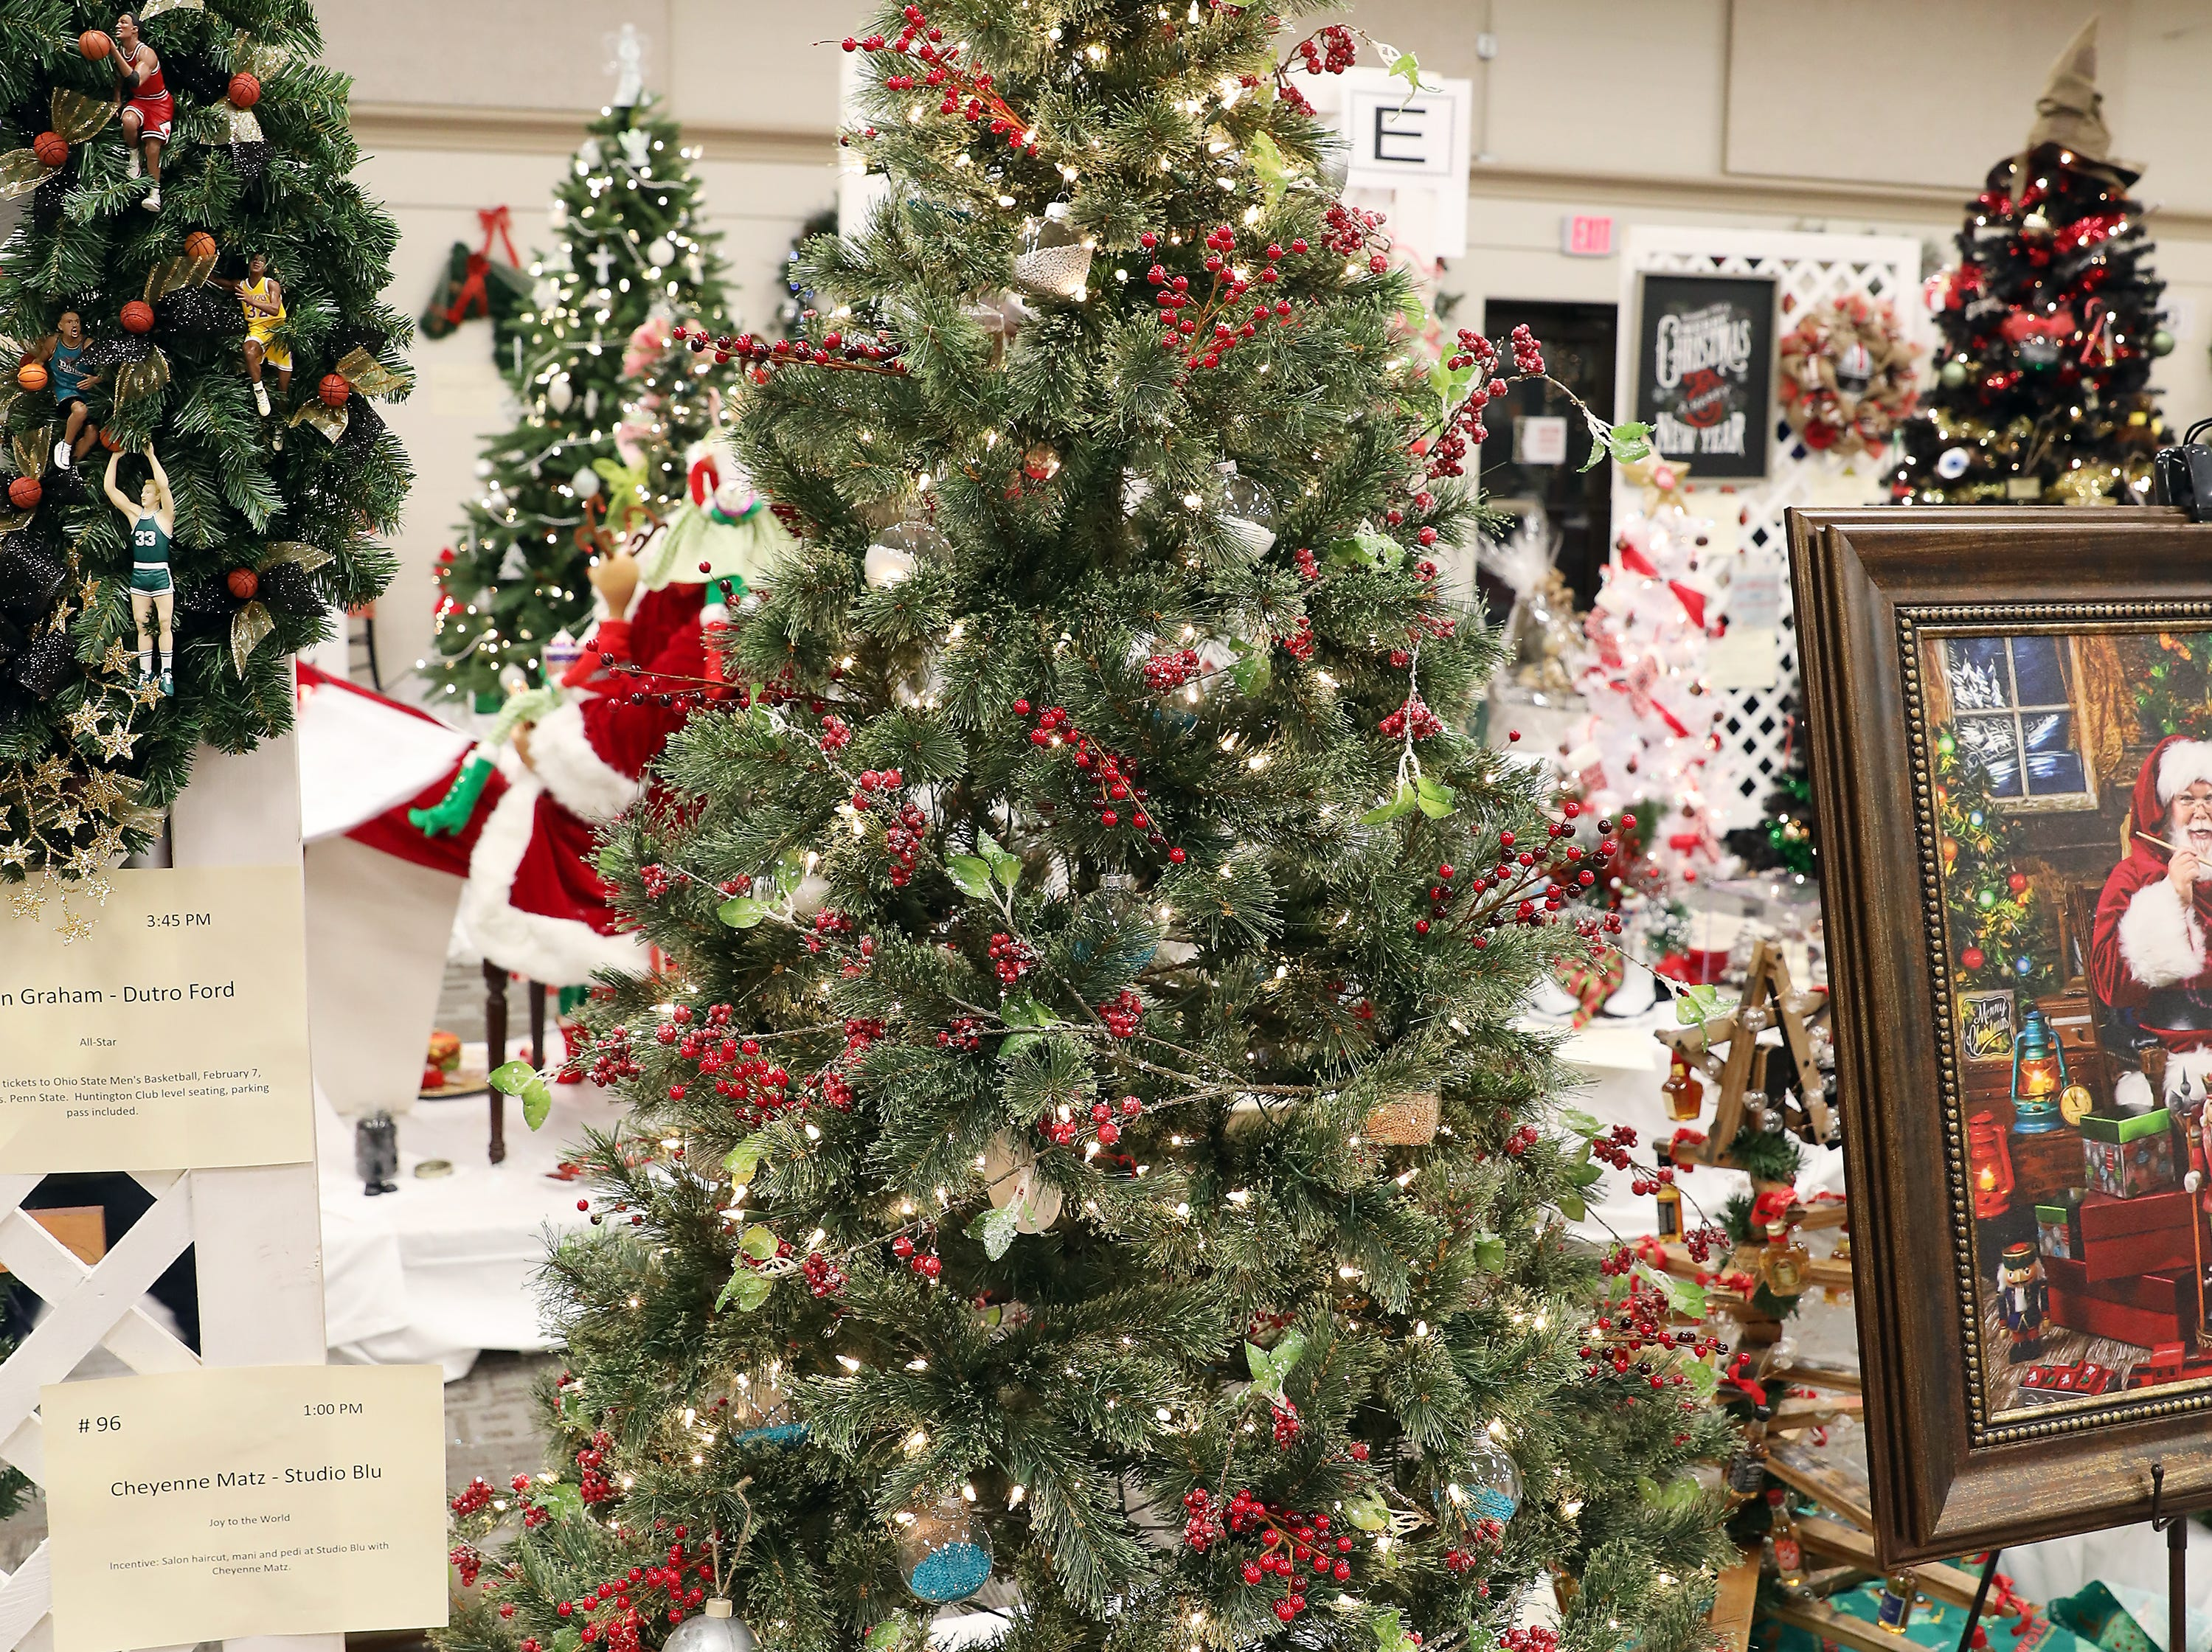 151	3:00 PM	Bilco Company	Large Tree	A Bilco Christmas	A large tree decorated in red featuring Christmas berries with a galvanized theme.		$50 Winerak gift card.